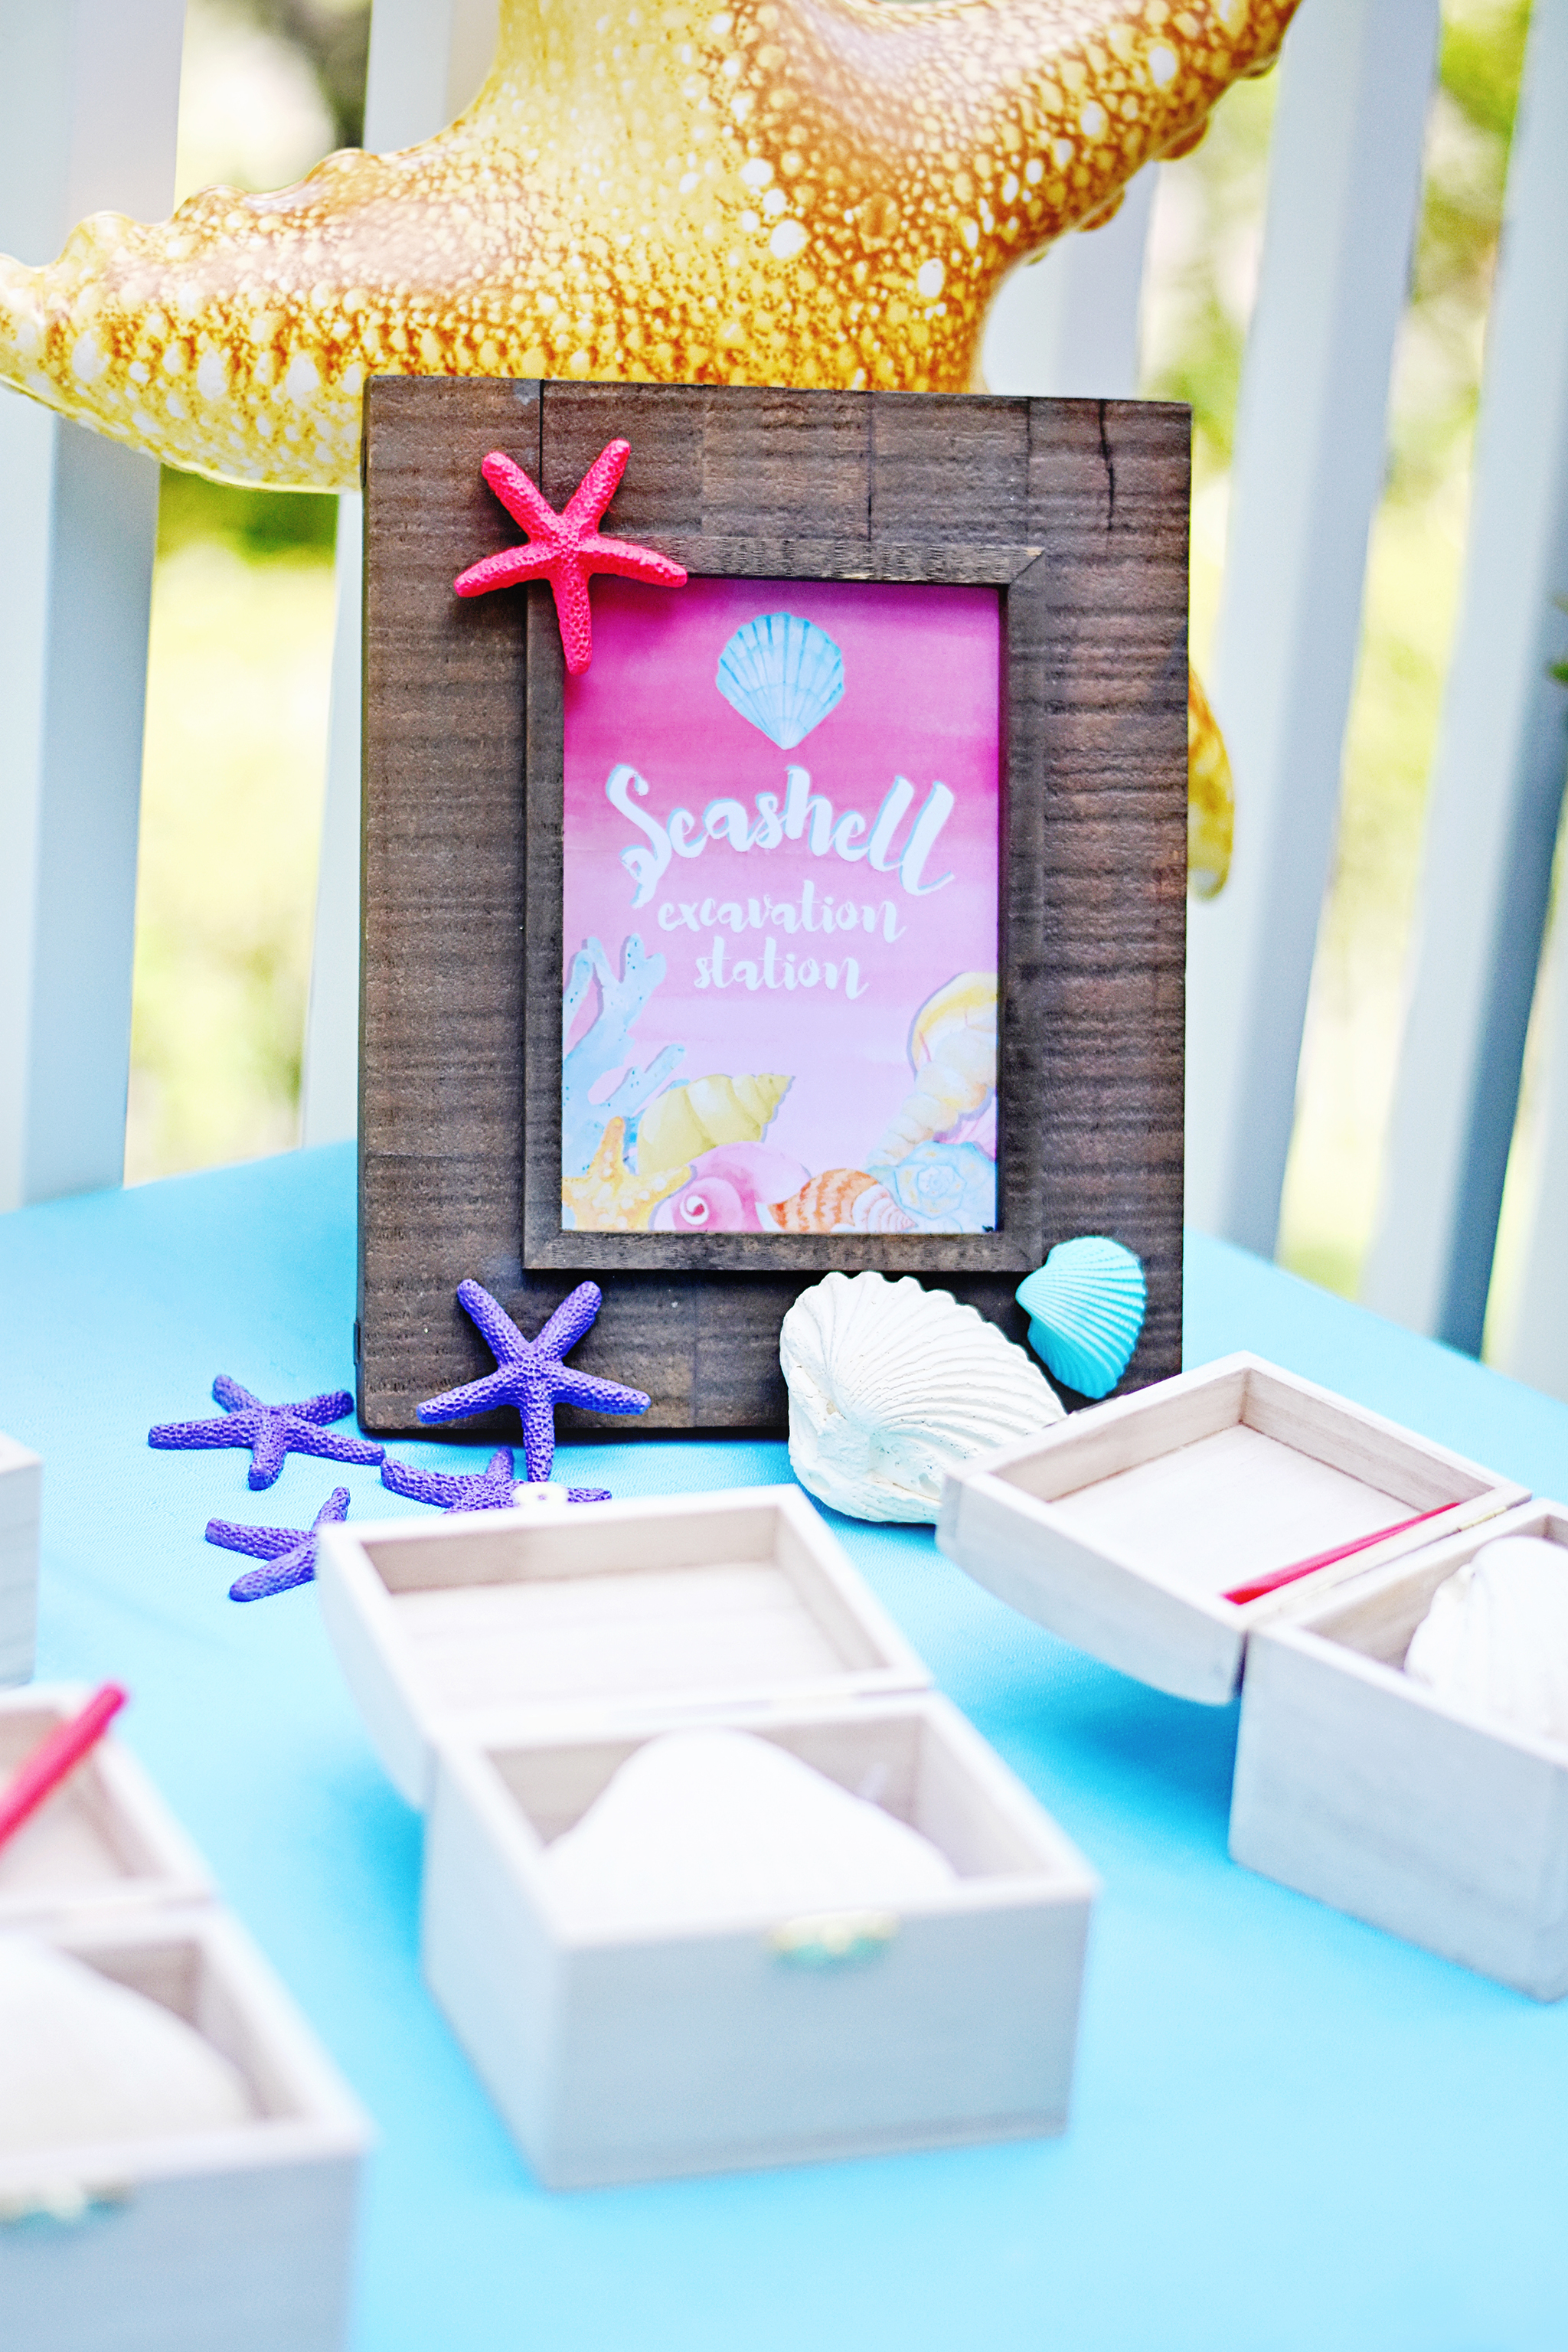 """Create a """"Seashell Excavation Station"""" at your Under the Sea party!"""